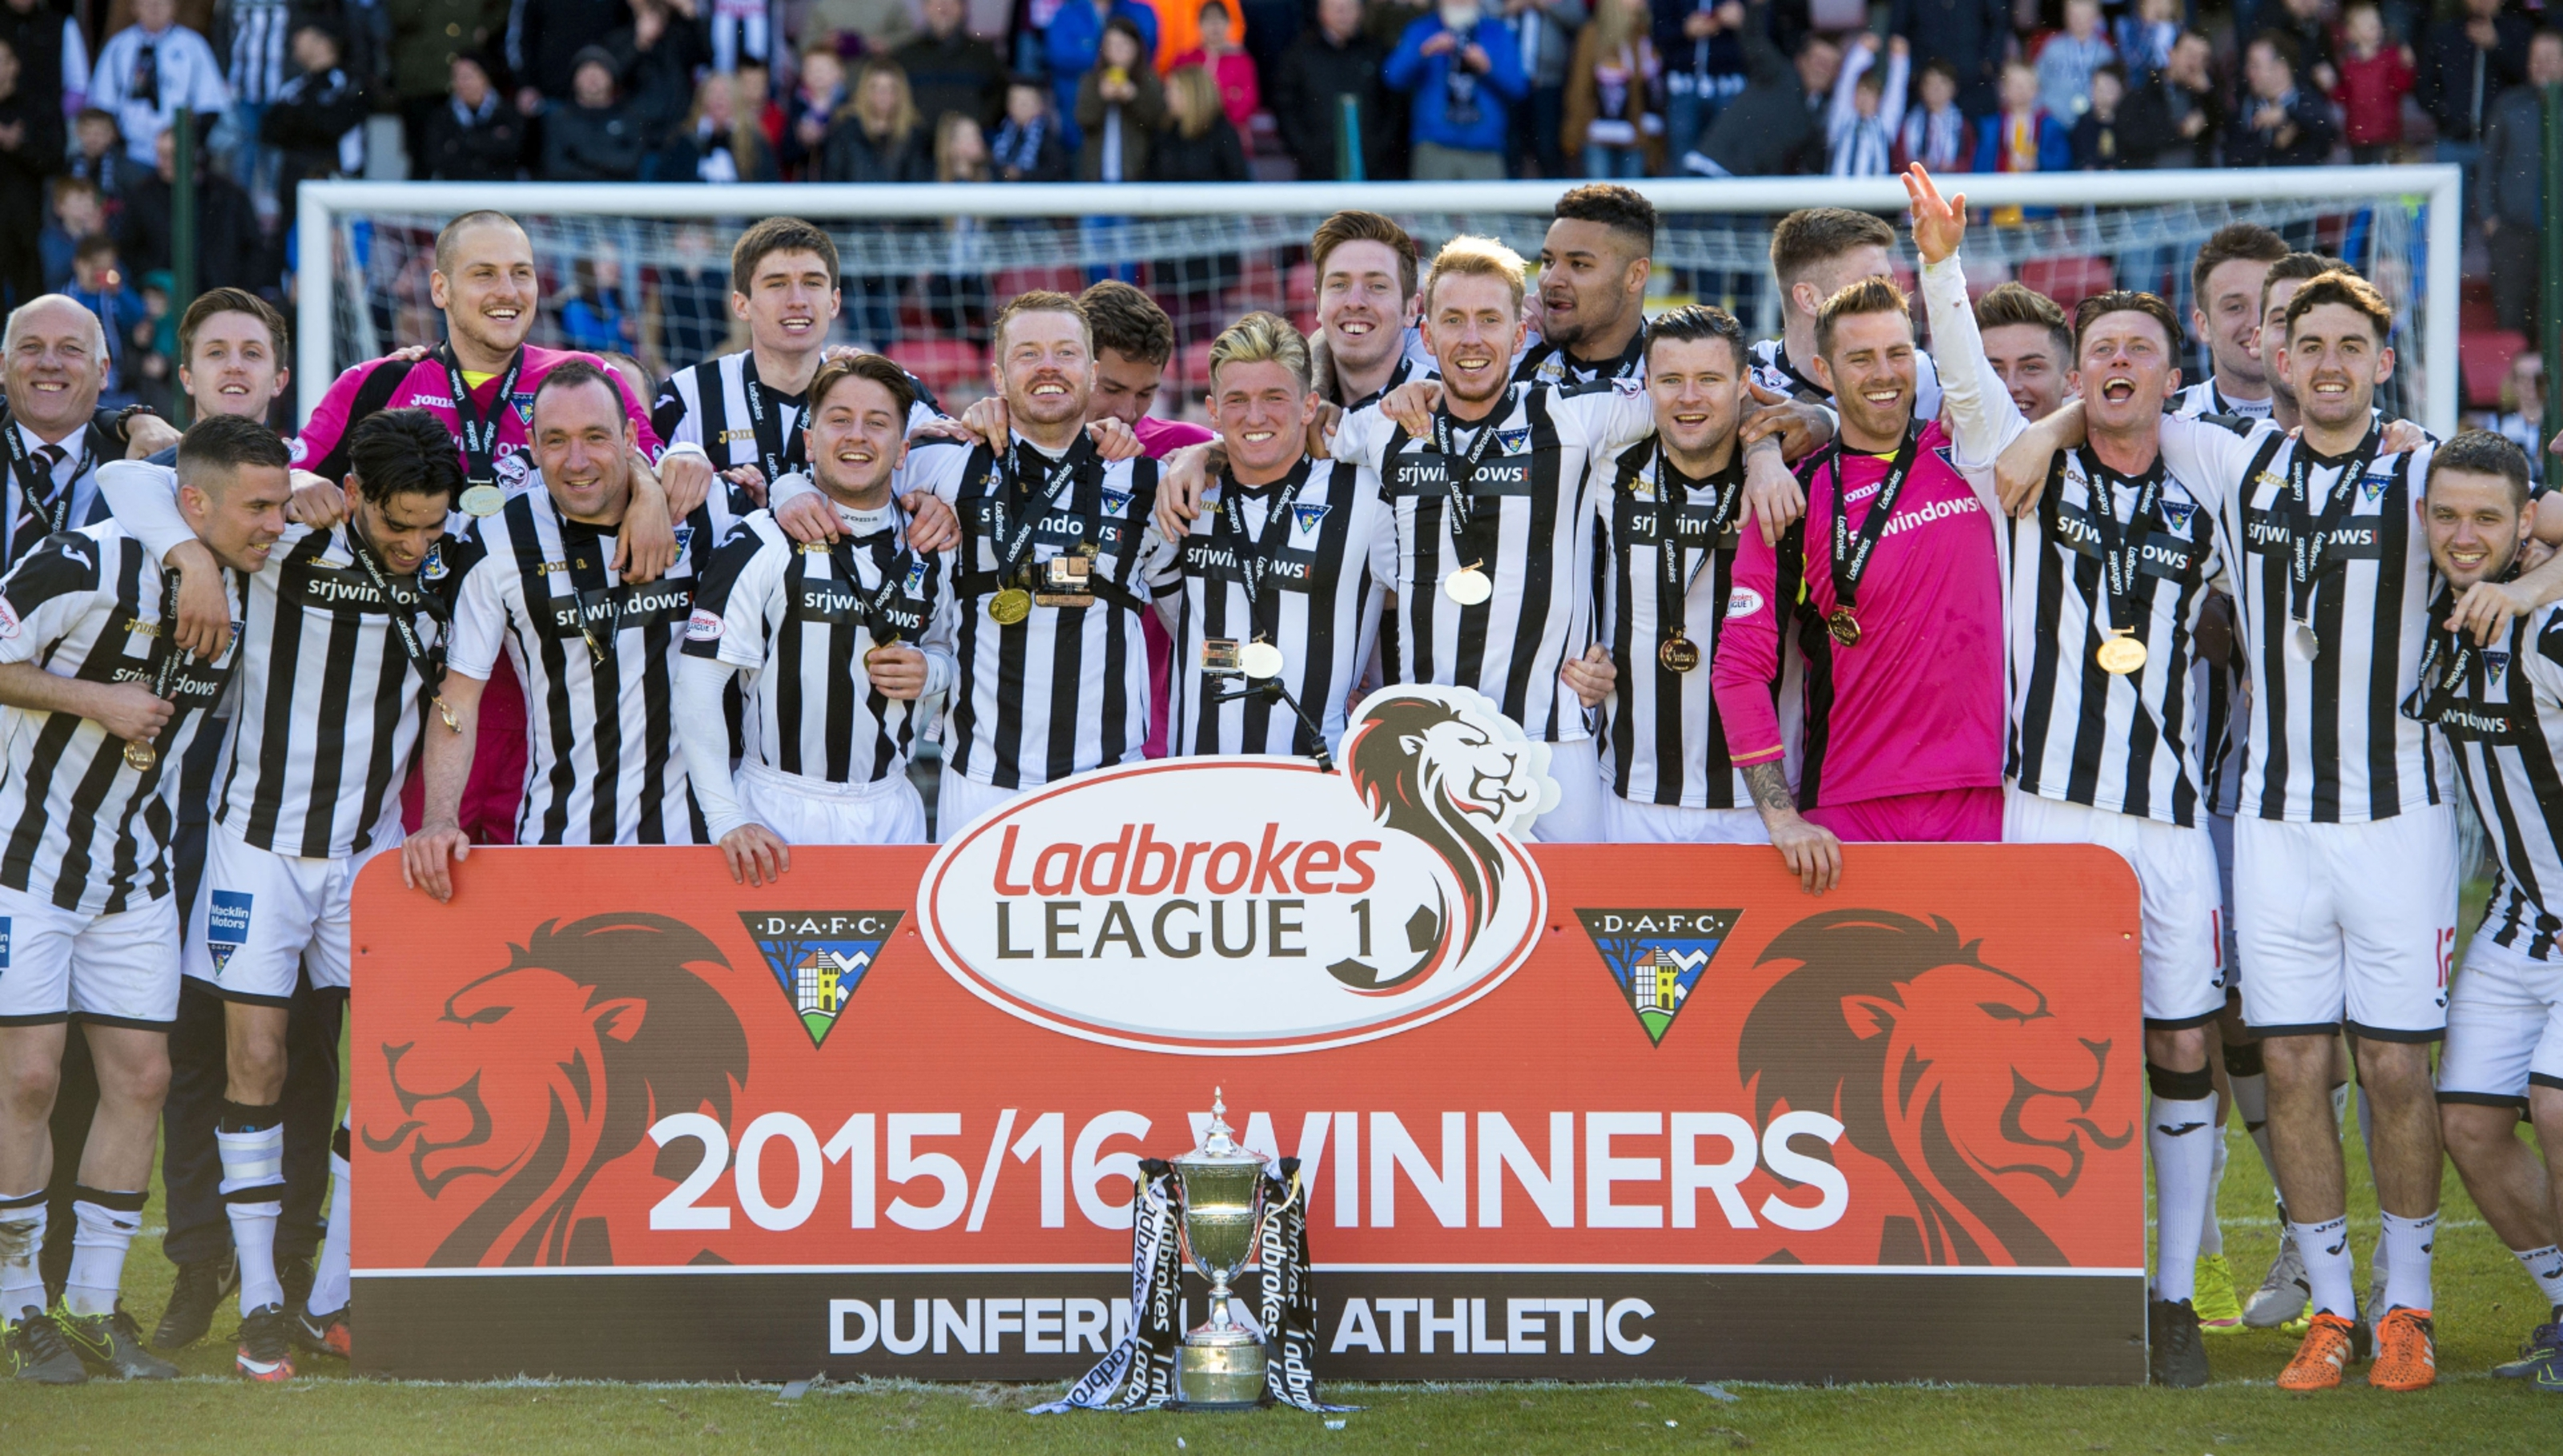 Dunfermline celebrate winning the Ladbrokes League One title